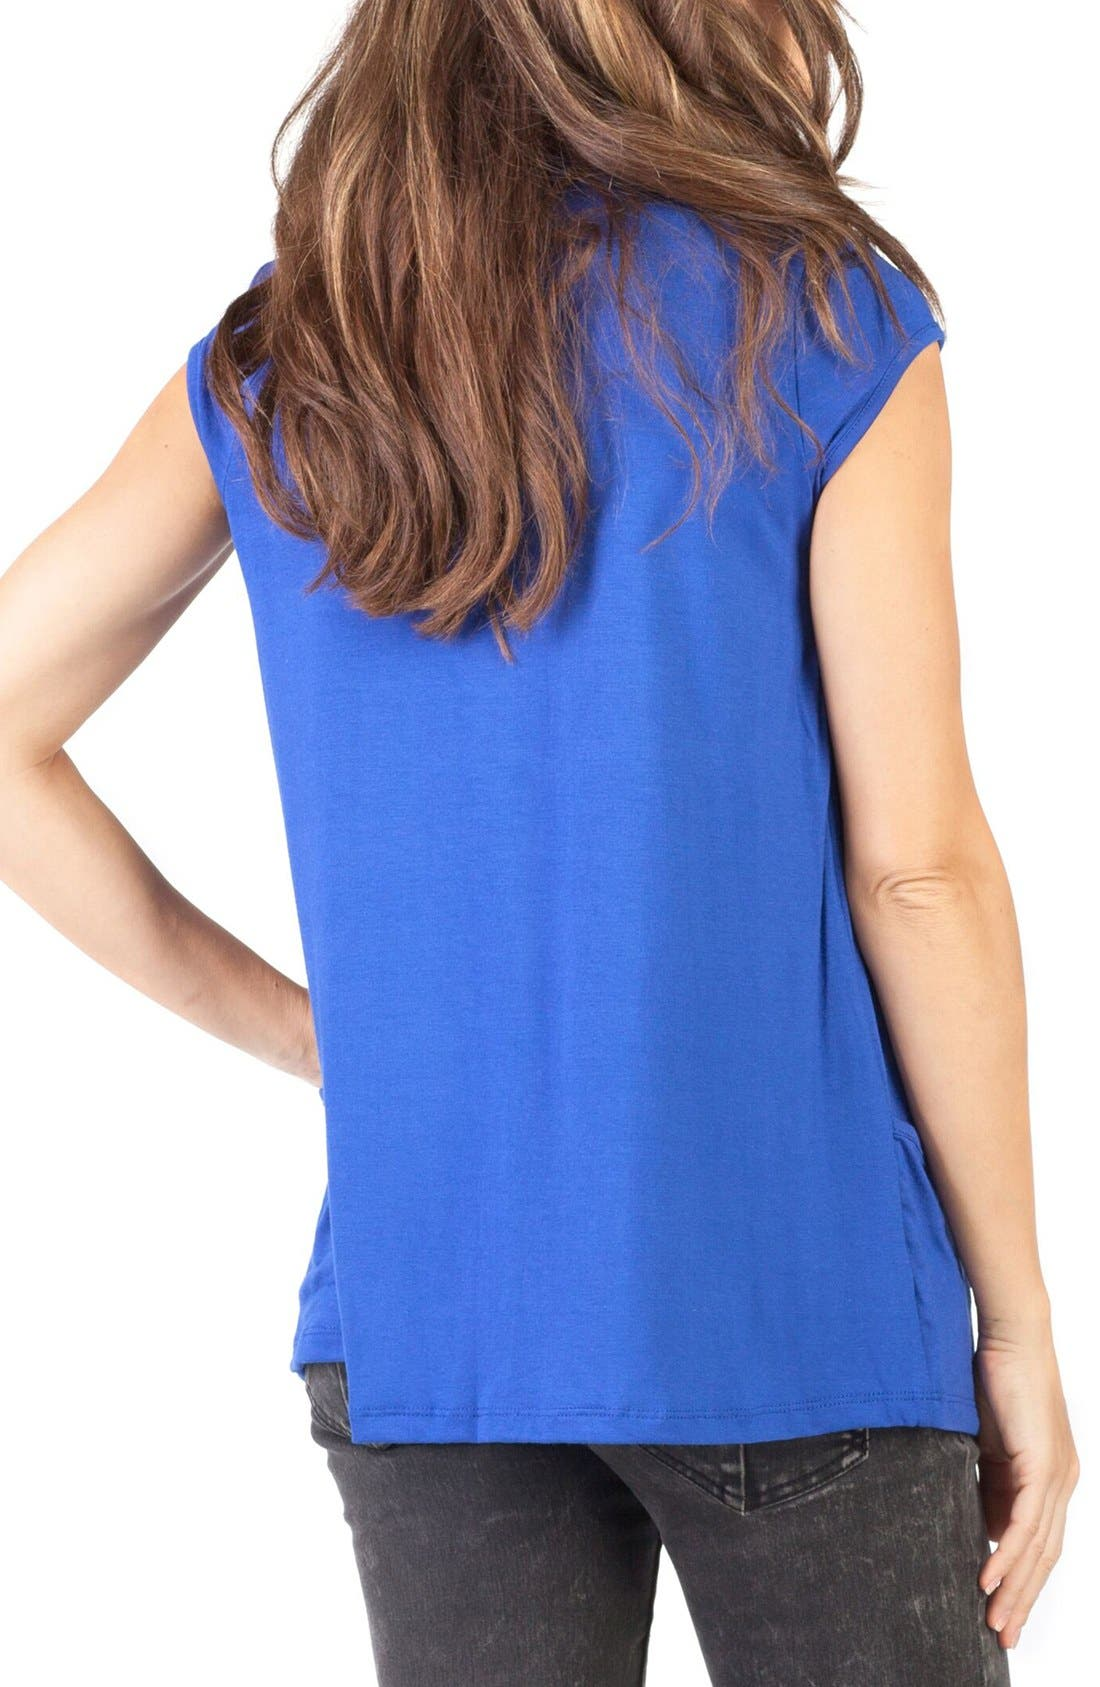 'The Babydoll' Maternity Nursing Top,                             Alternate thumbnail 4, color,                             BLUE